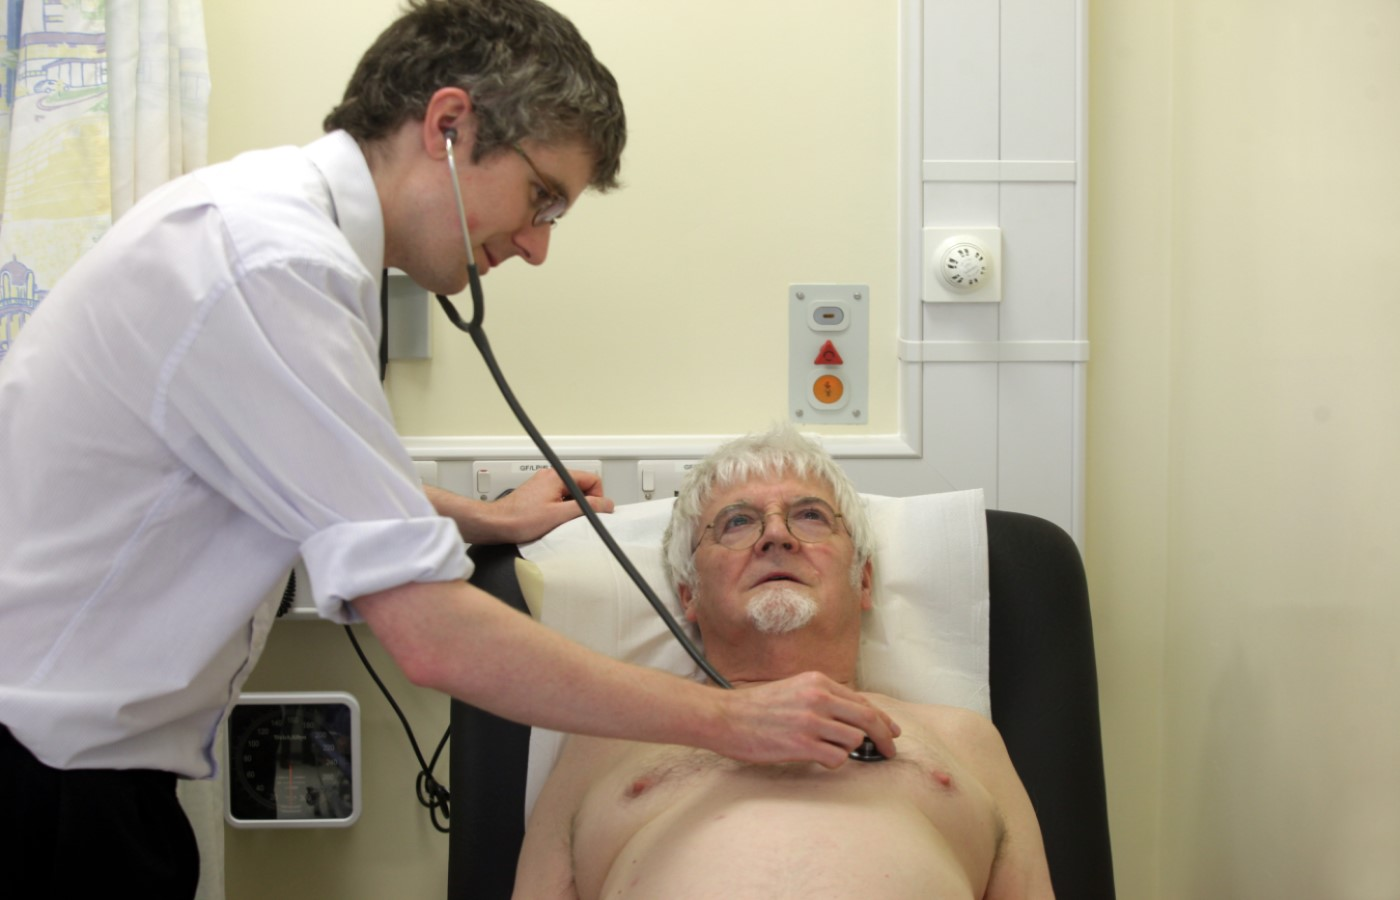 Man receiving chest examination from doctor